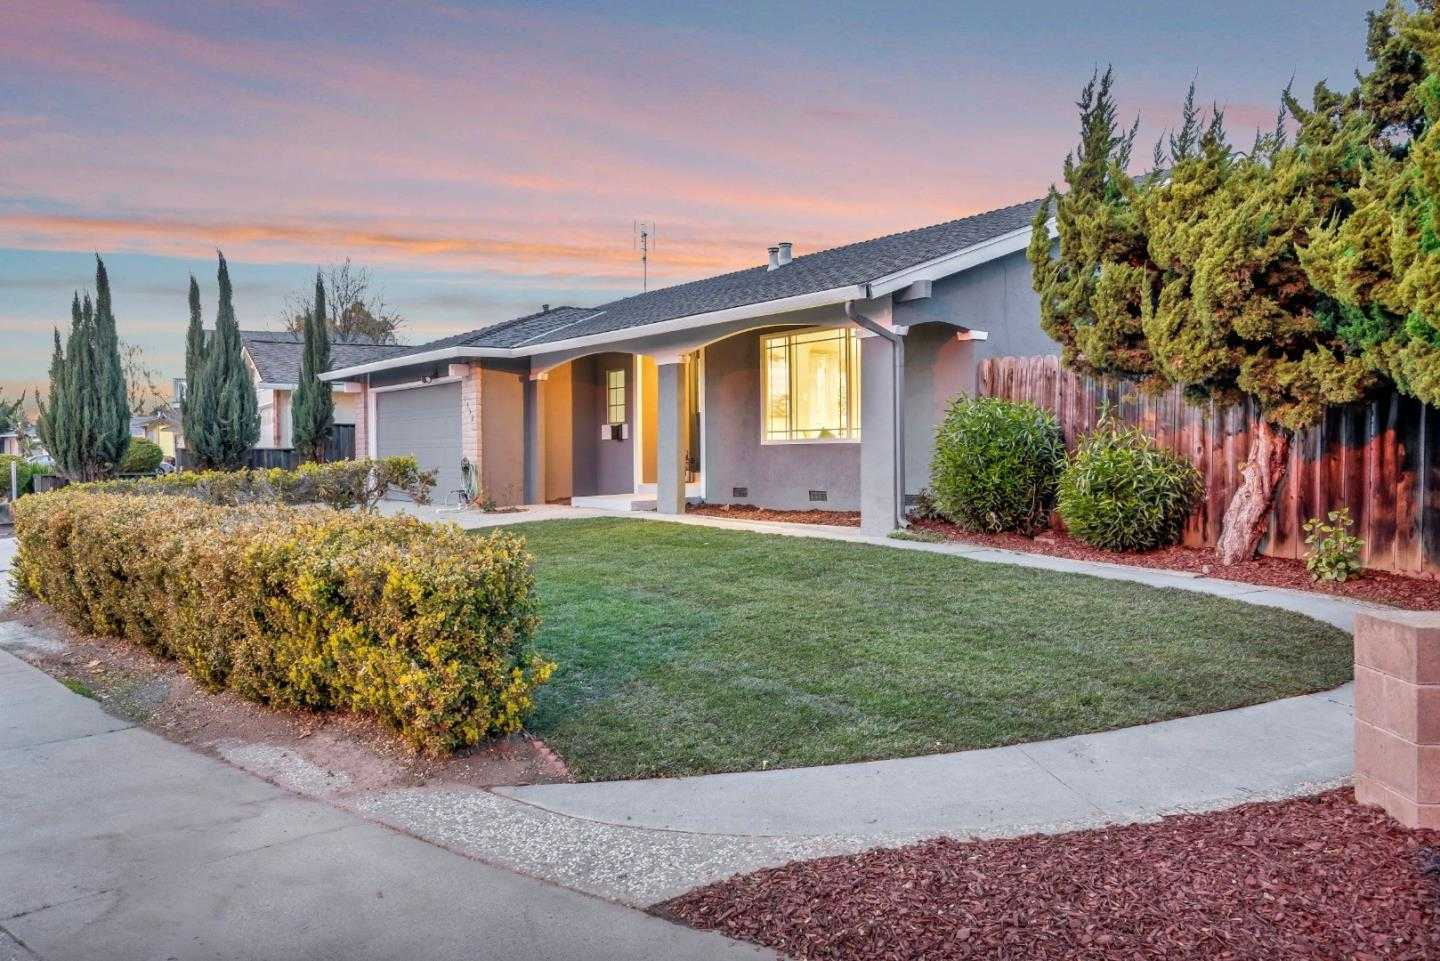 $1,200,000 - 3Br/2Ba -  for Sale in San Jose